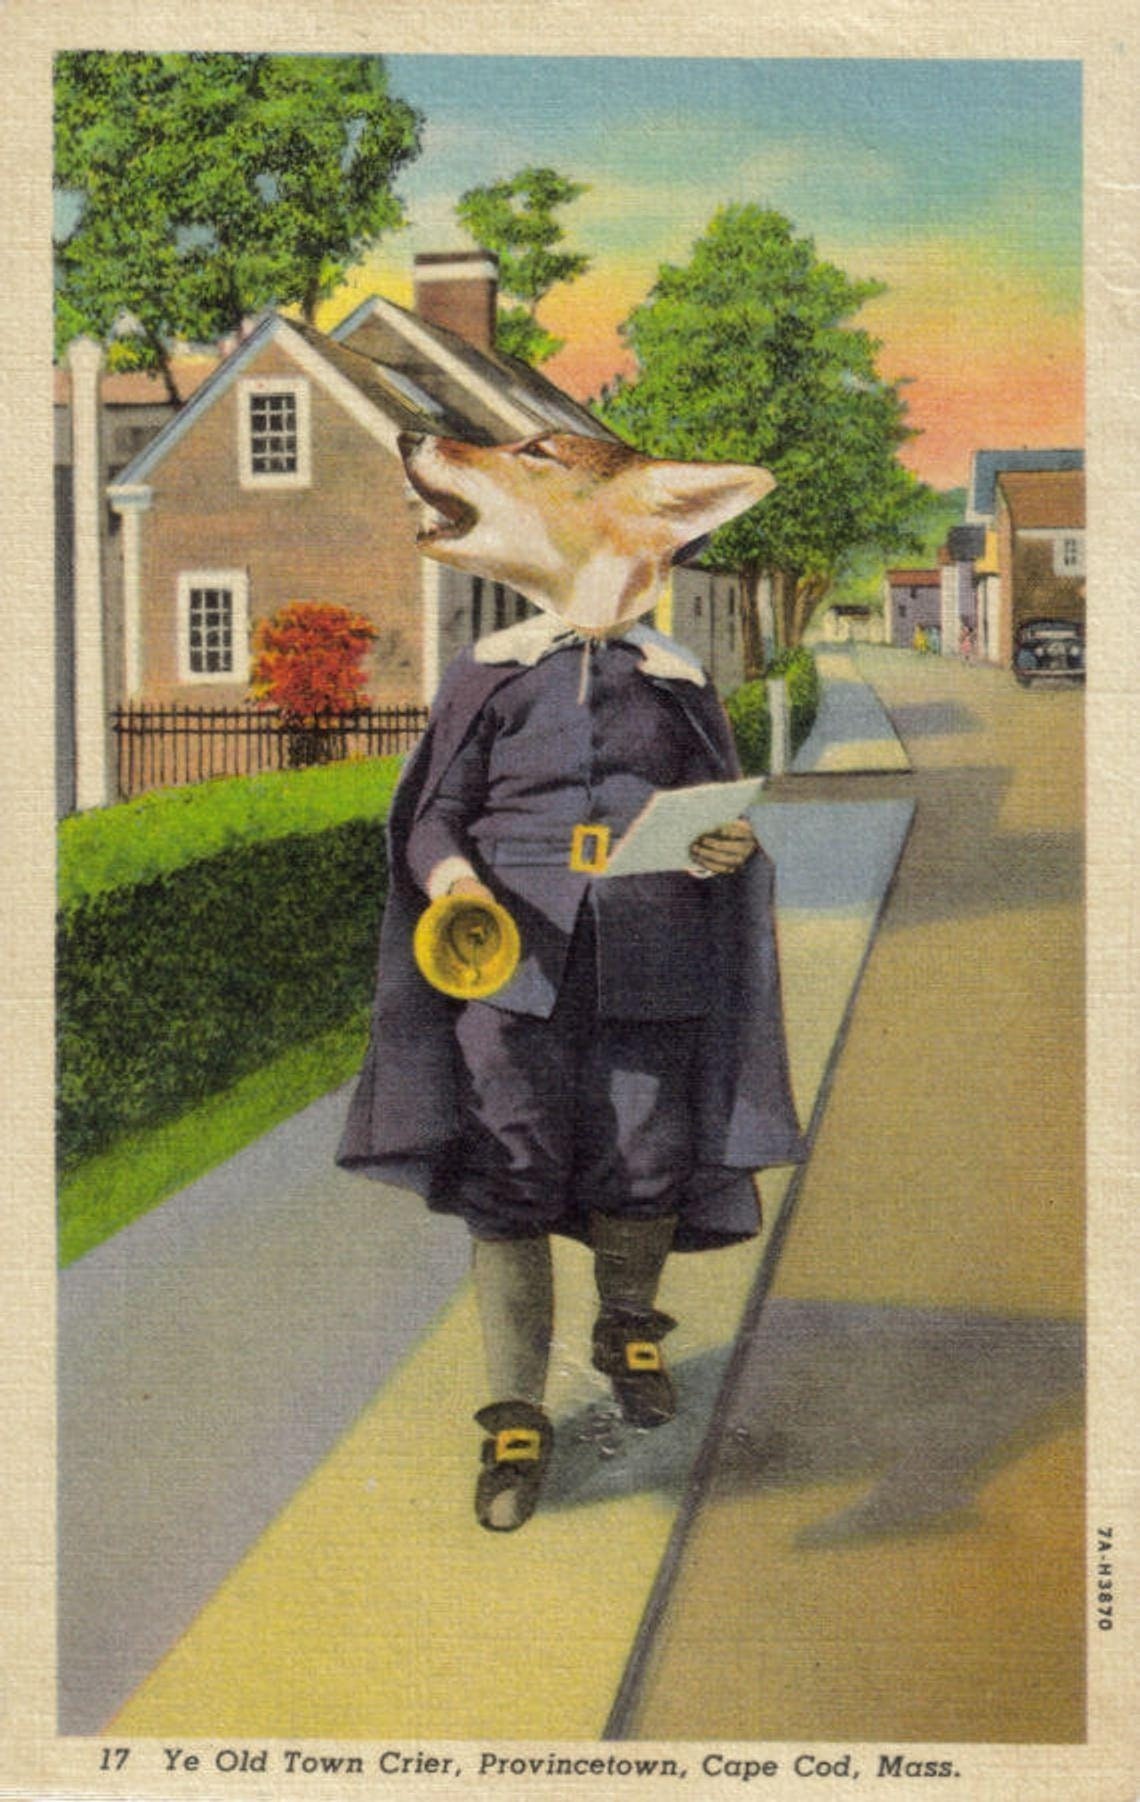 Original Collage Art, Anthropomorphic Artwork, Cape Cod Postcard - product images  of